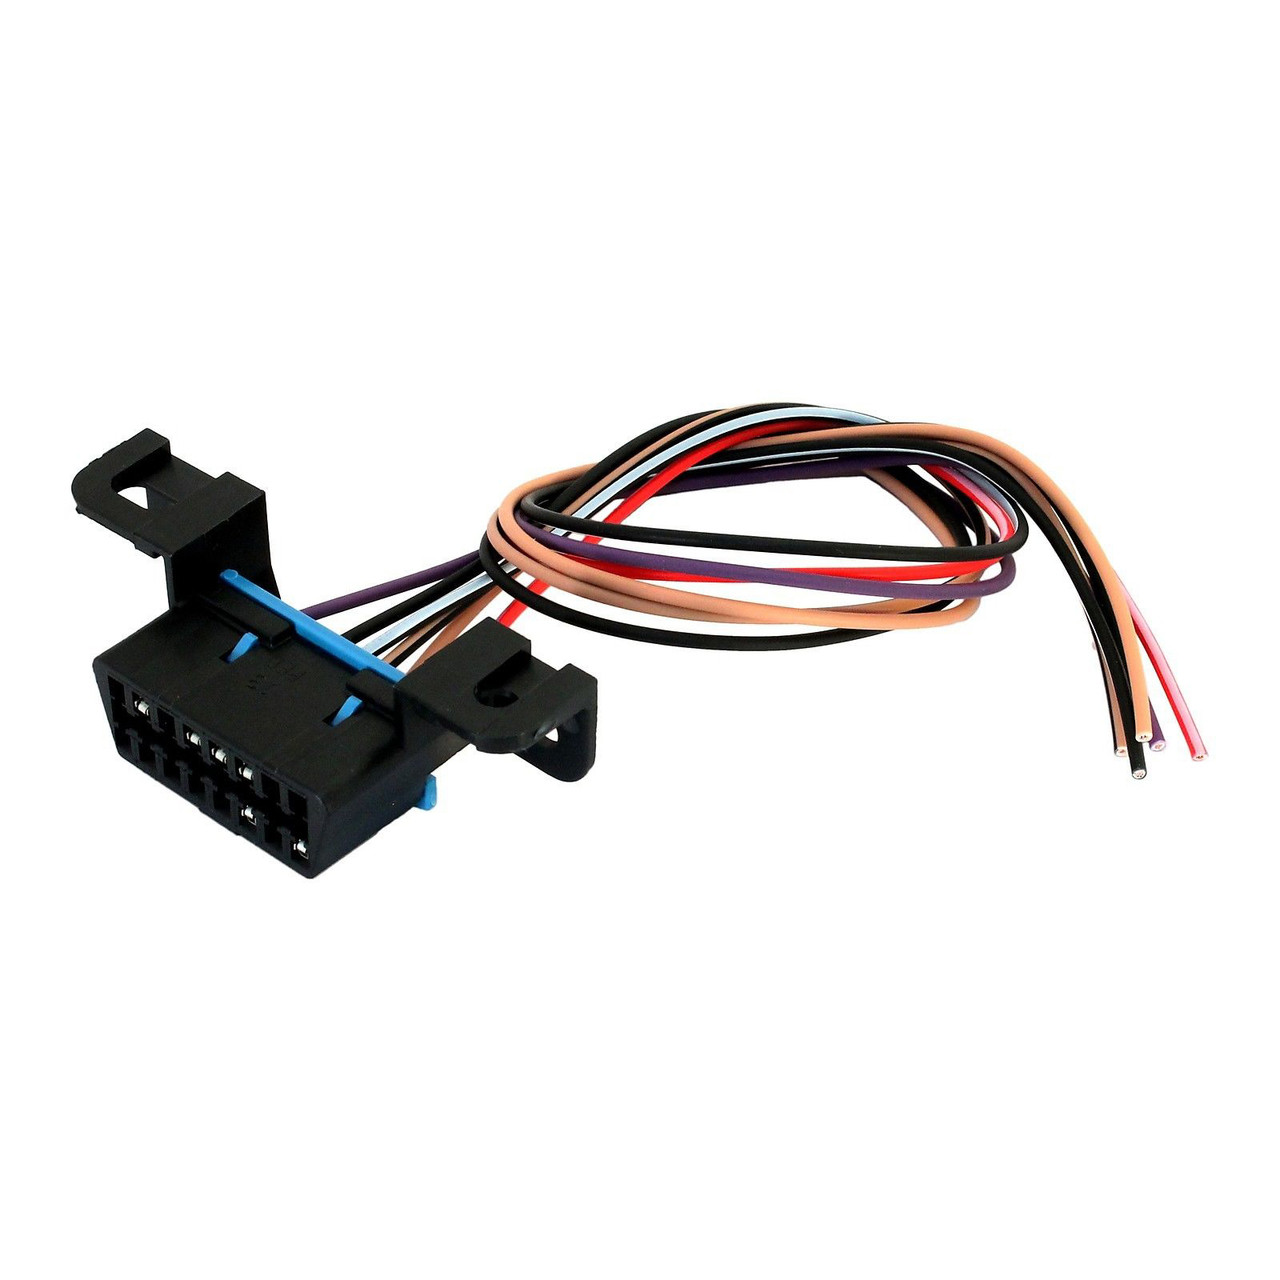 small resolution of obdii obd2 j1962 class 2 can bus wiring harness connector pigtail16p conn dlc can pt f 10644